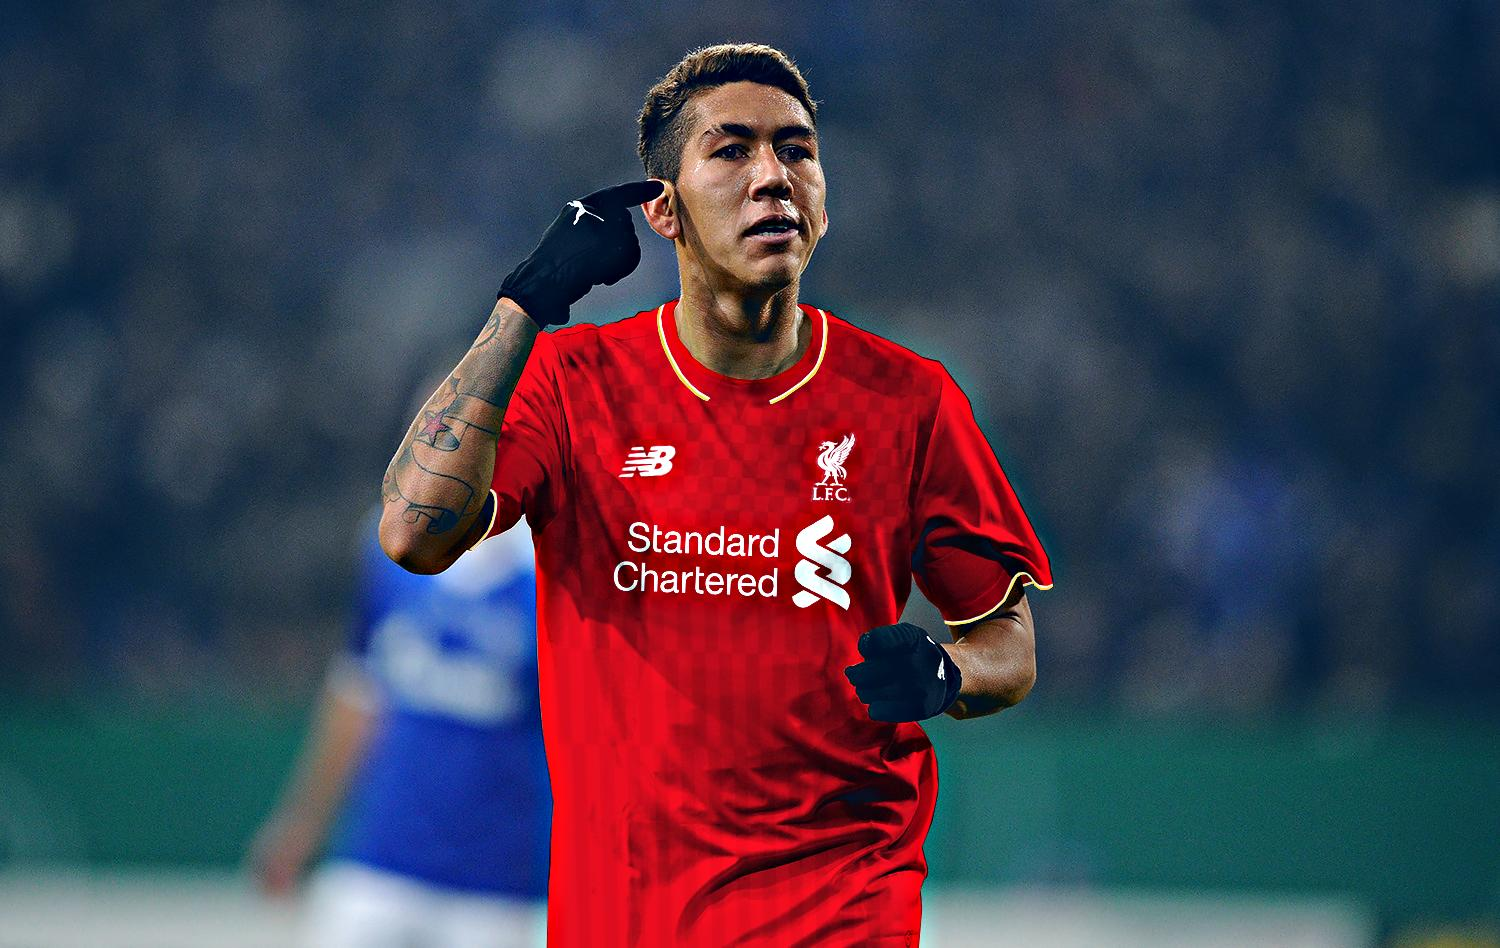 Firmino of Liverpool